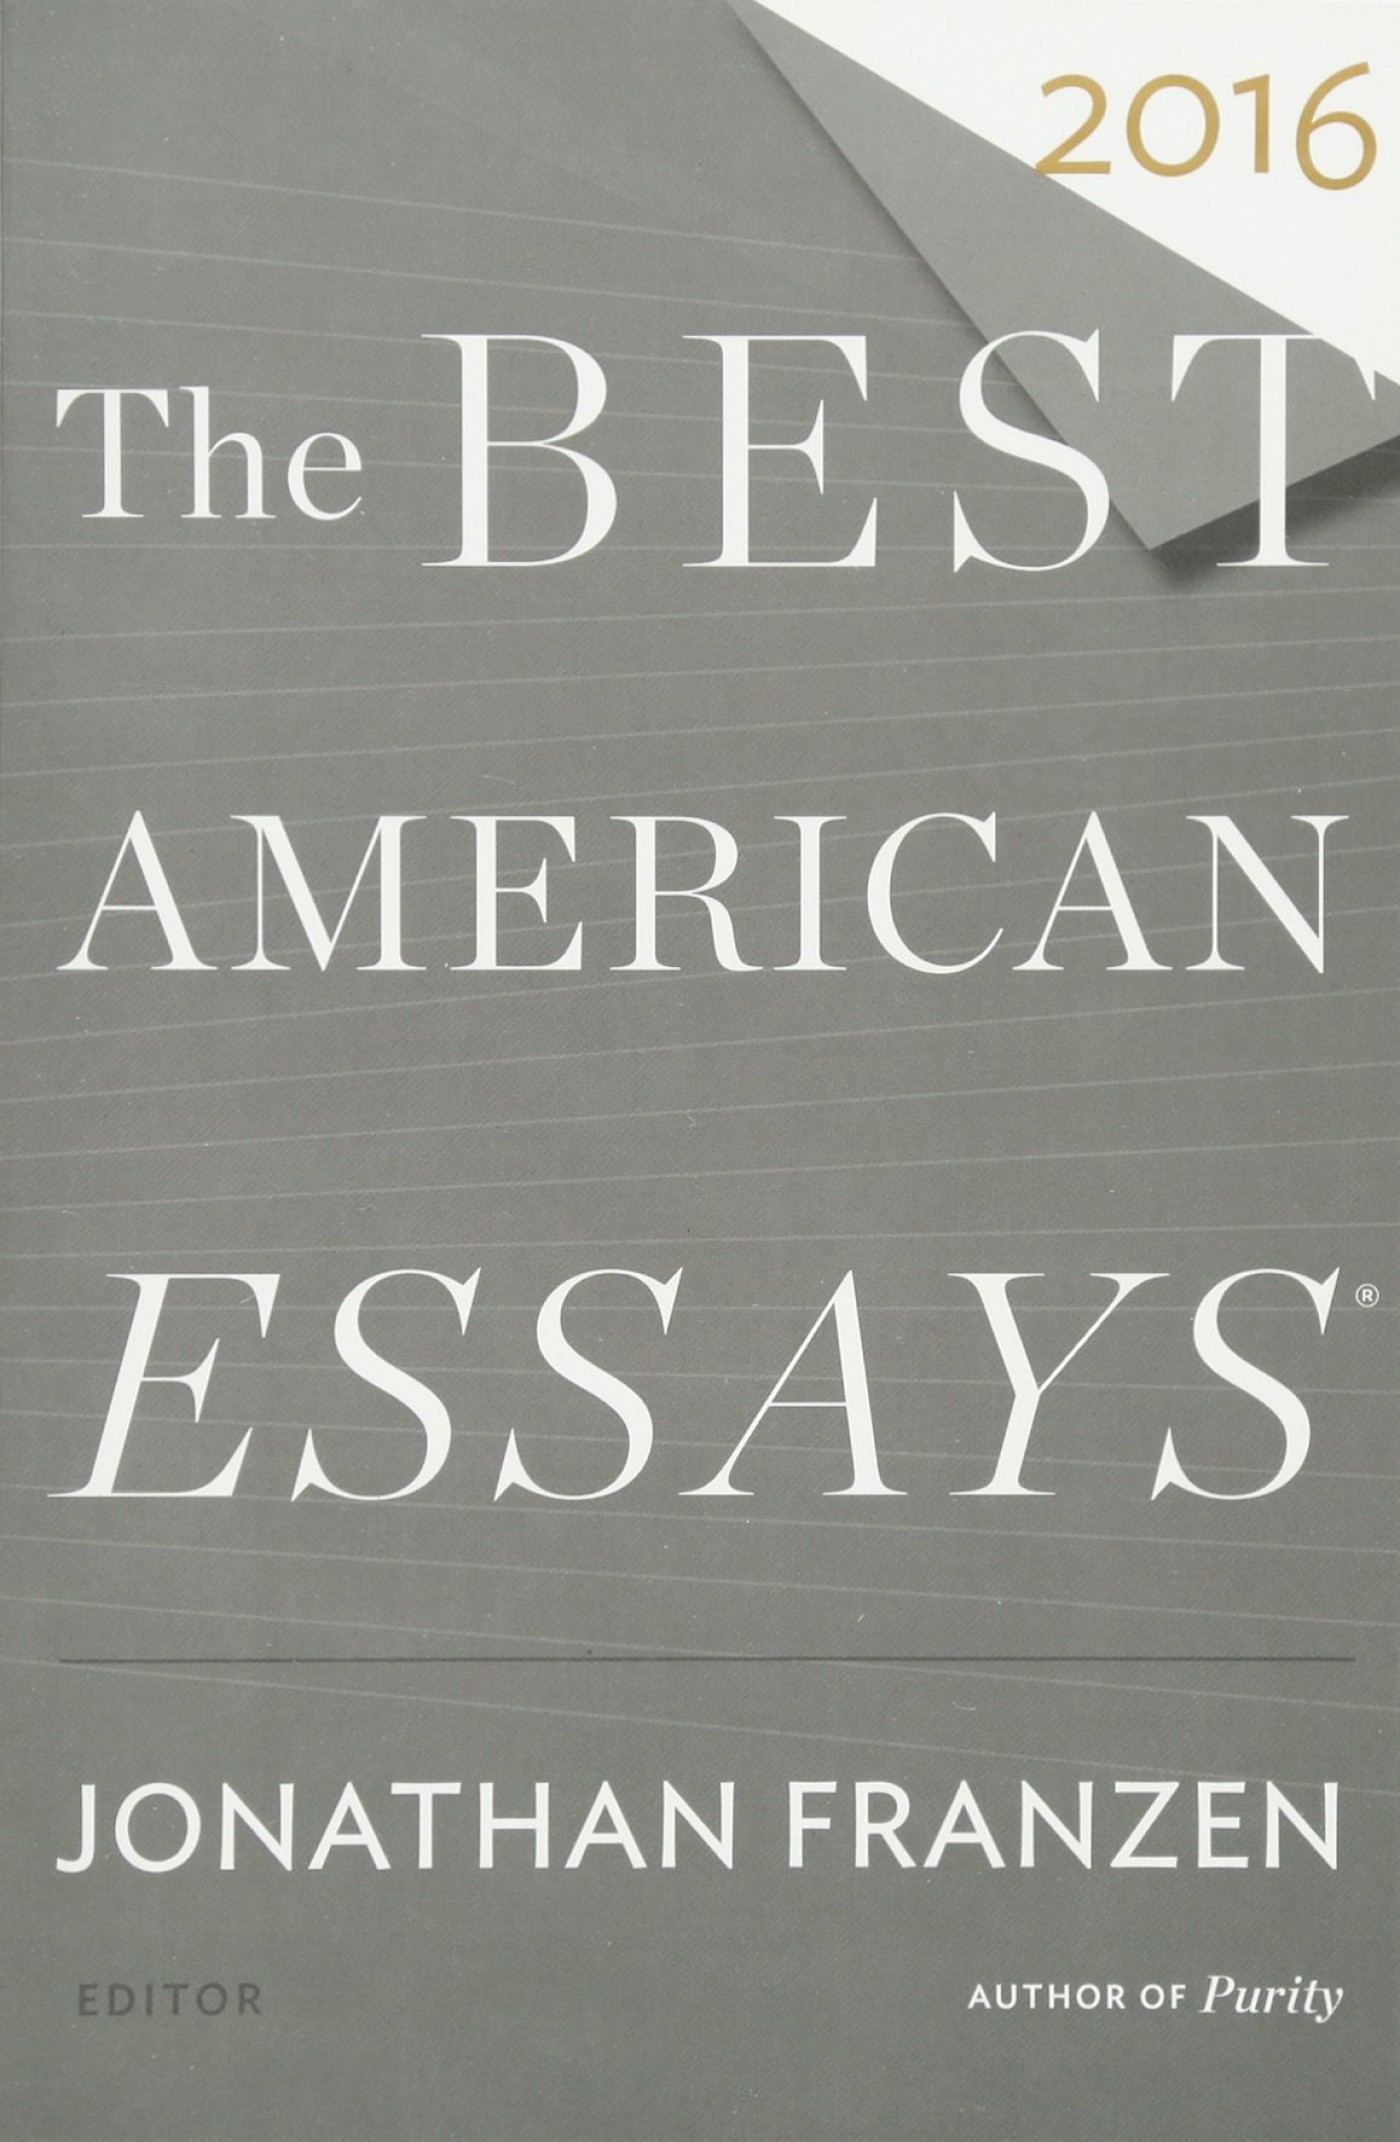 005 The Best American Essays Essay Example Wonderful 2018 Pdf 2017 Table Of Contents 2015 Free 1400